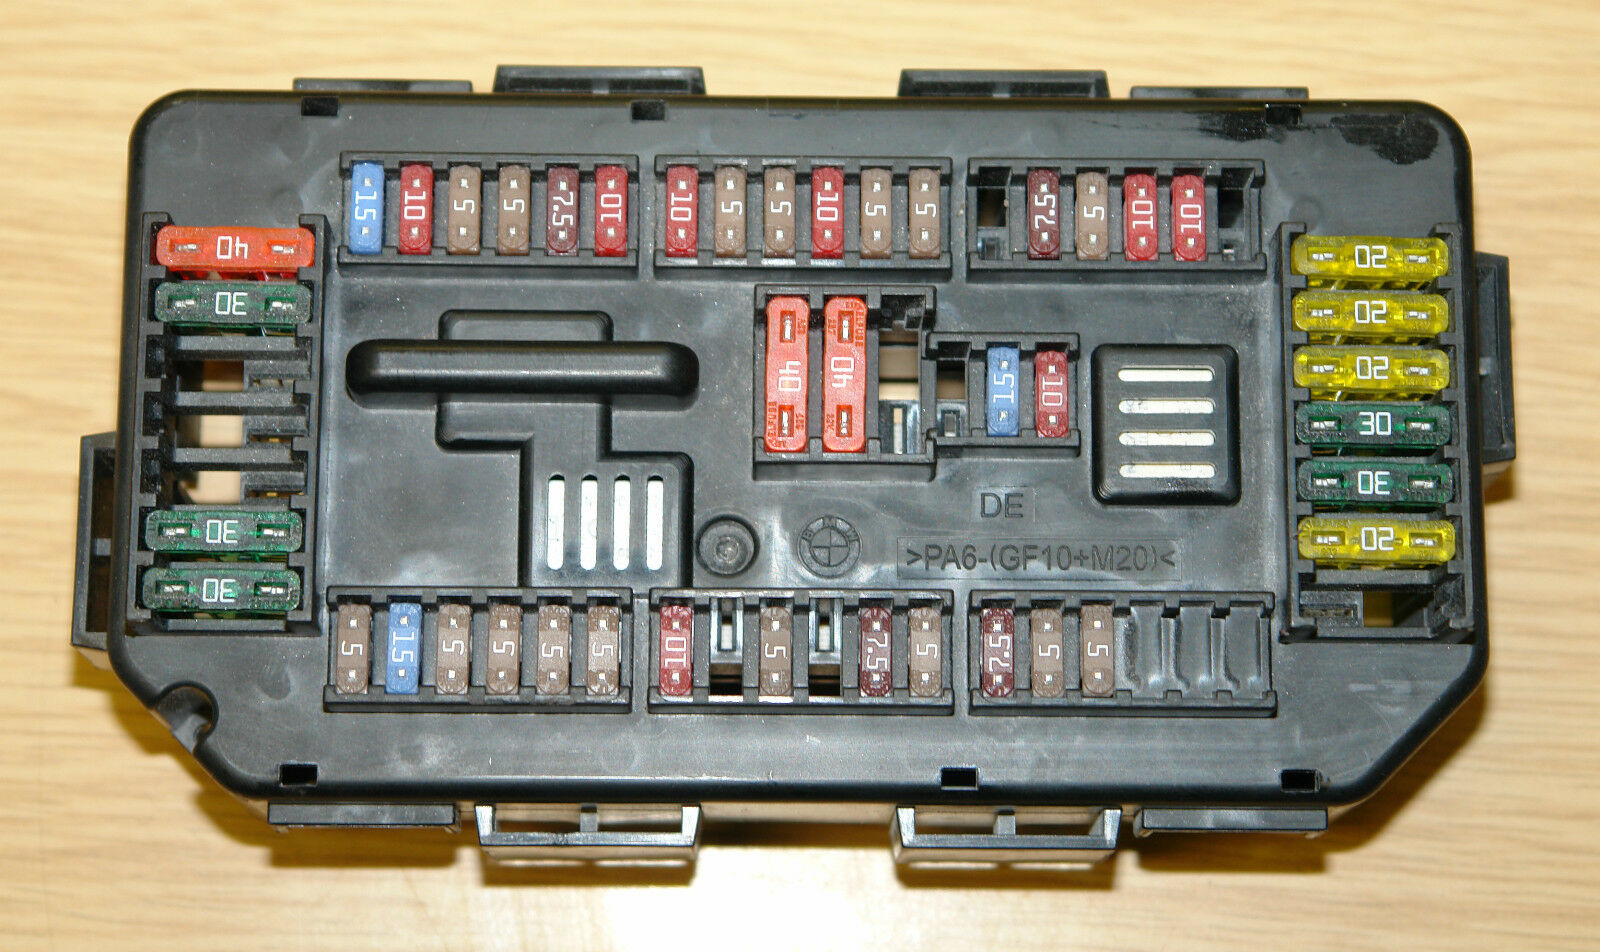 Bmw 1 3 Series F10 F20 F30 F31 Dash Fuse Box 922487904 6114922487904 Of 2only Available See More